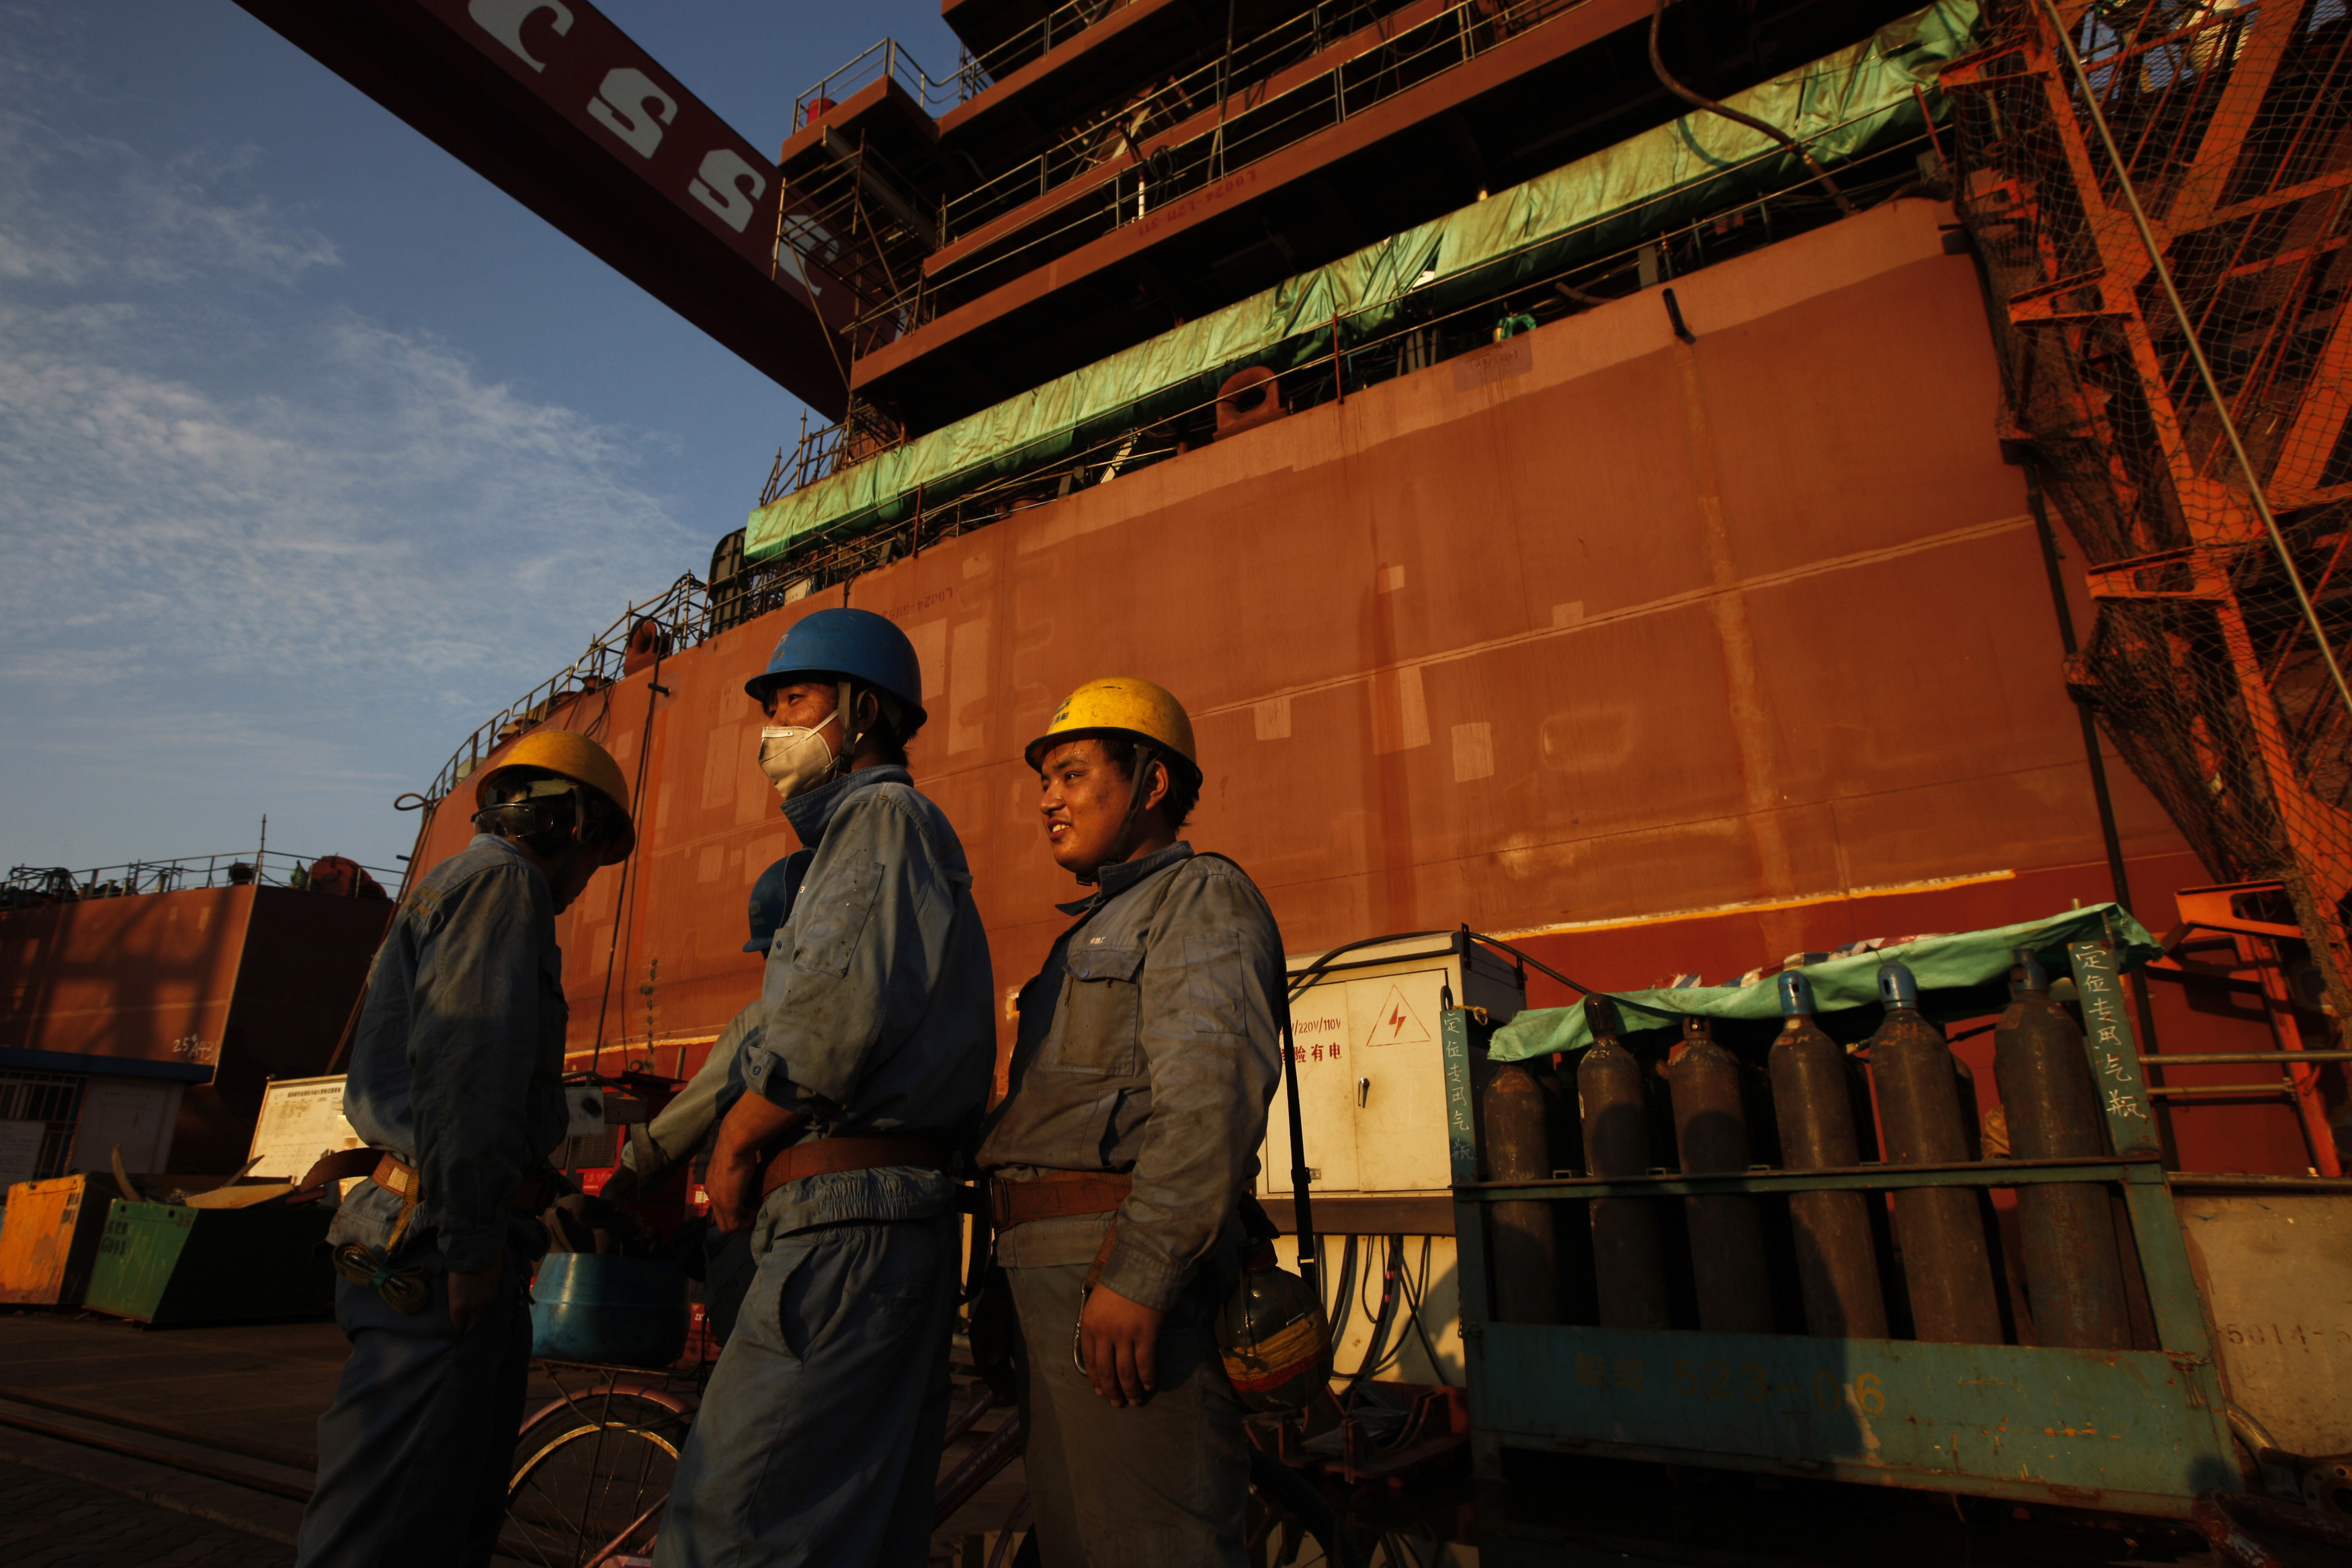 Employees stand in front of nearly completed ship at China State Shipbuilding Corporation (CSSC) Longxue shipbuilding, in the southern Chinese city of Guangzhou November 13, 2011.